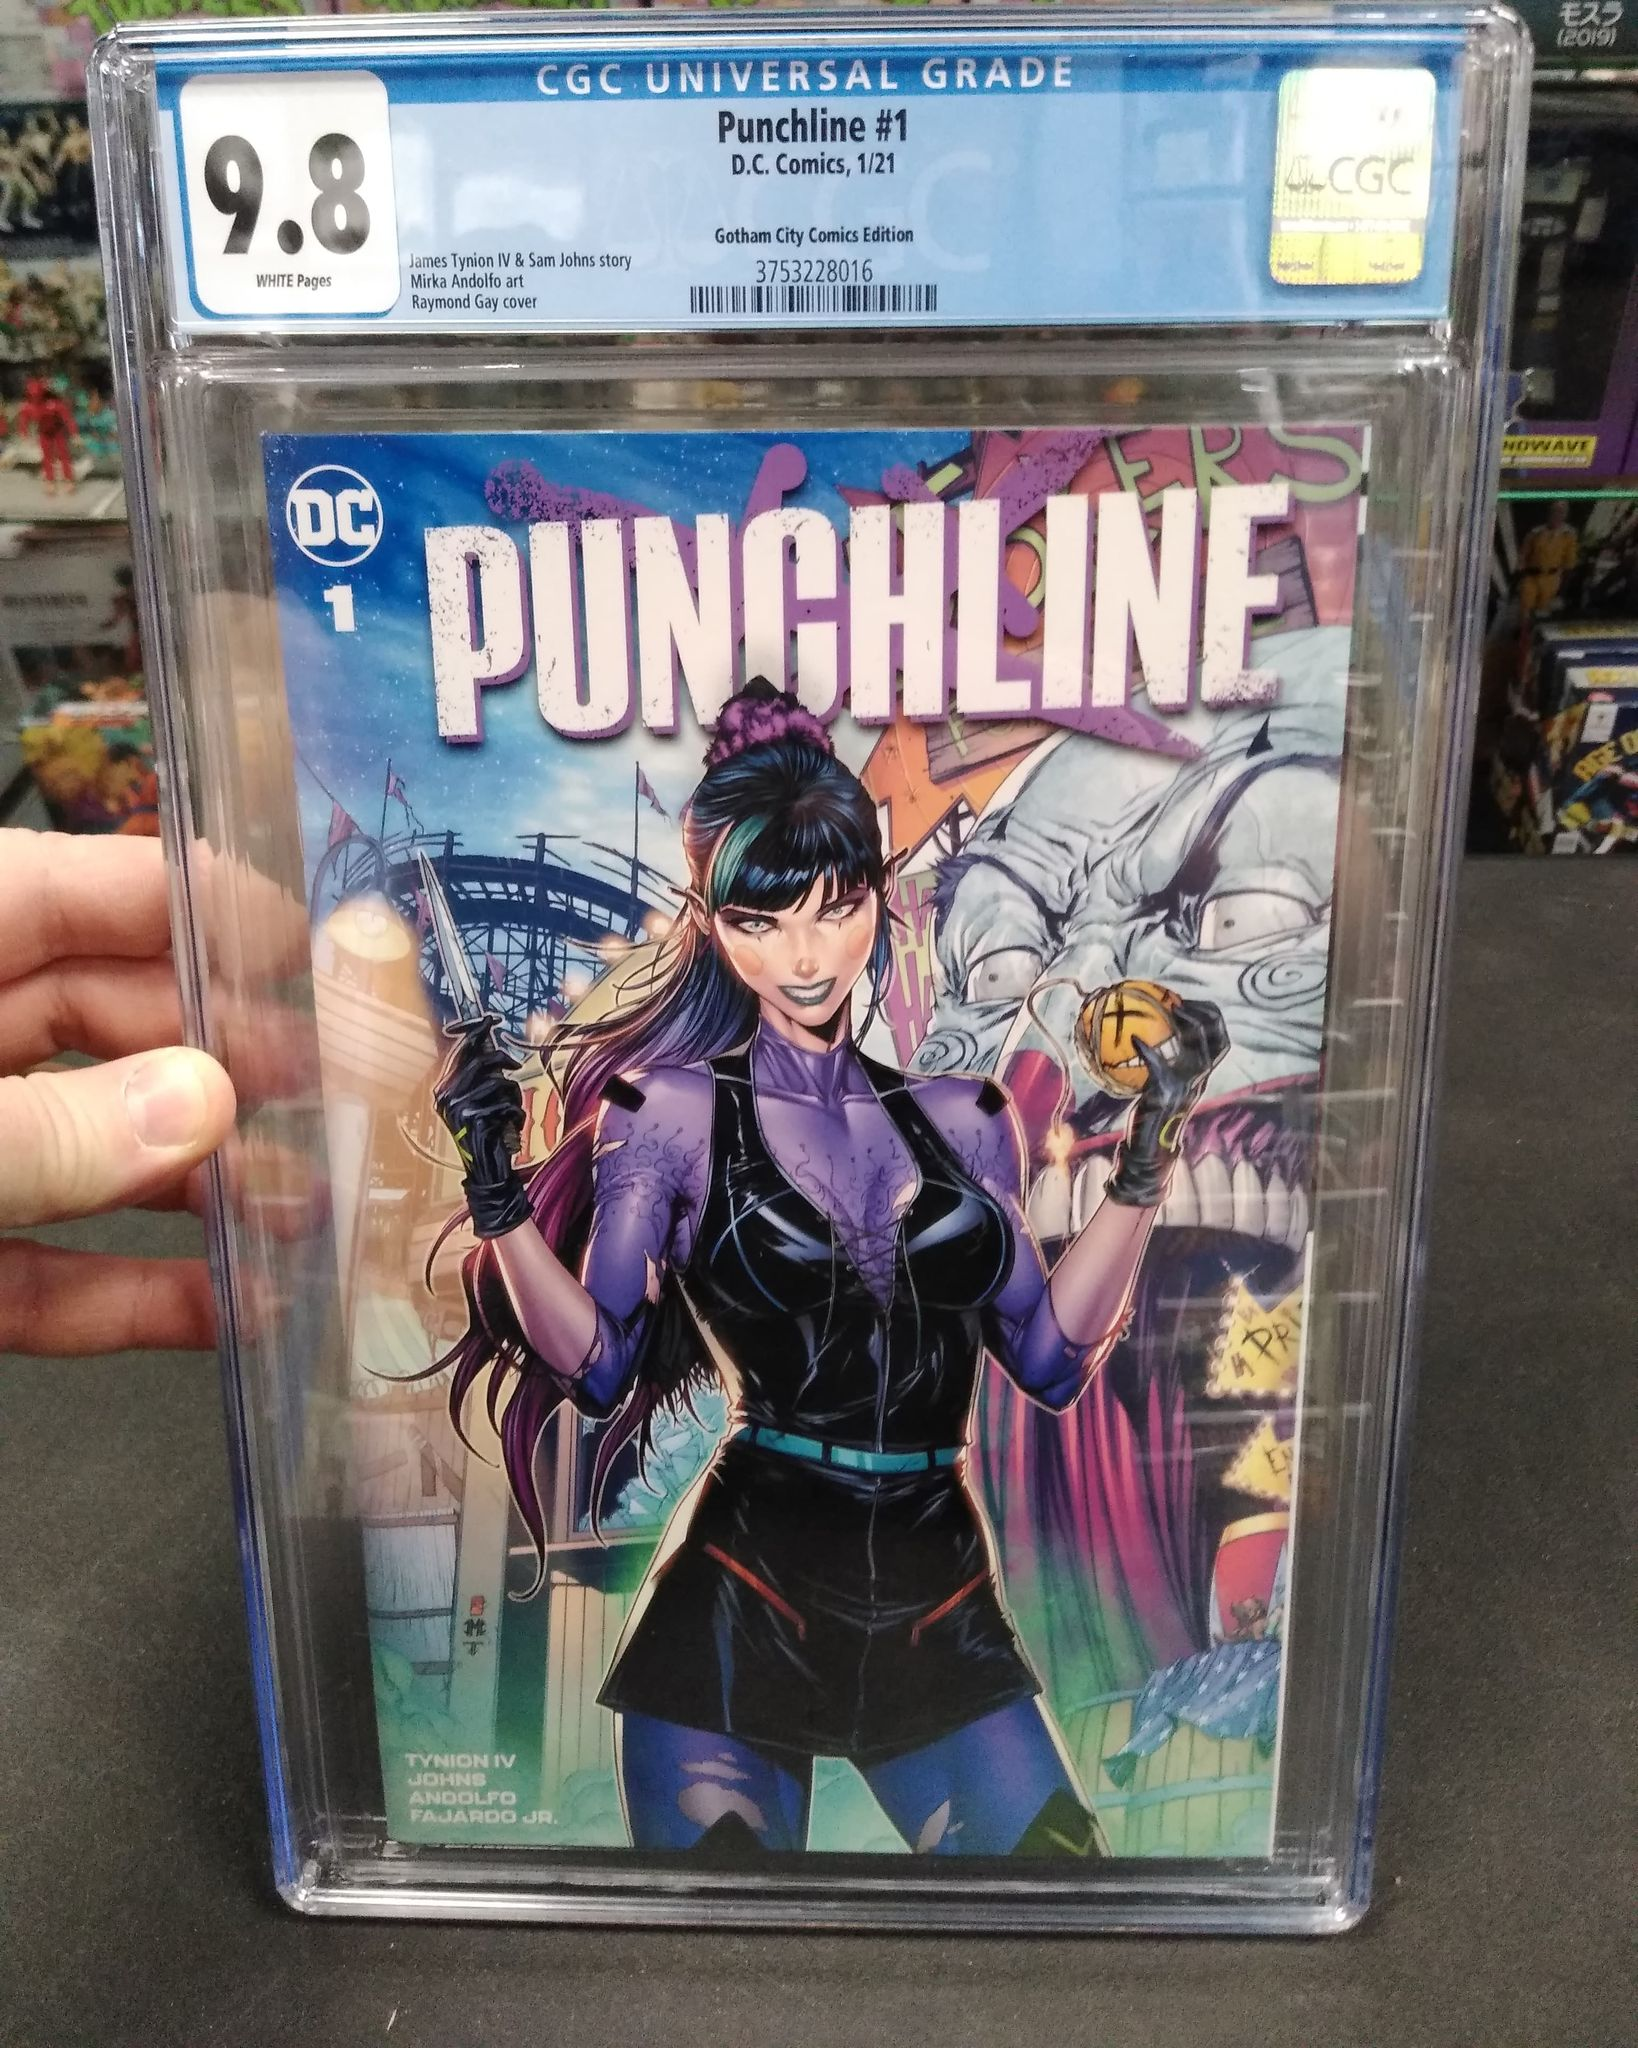 Punchline #1 One-Shot Limited Store Exclusive Cover Guaranteed CGC 9.8